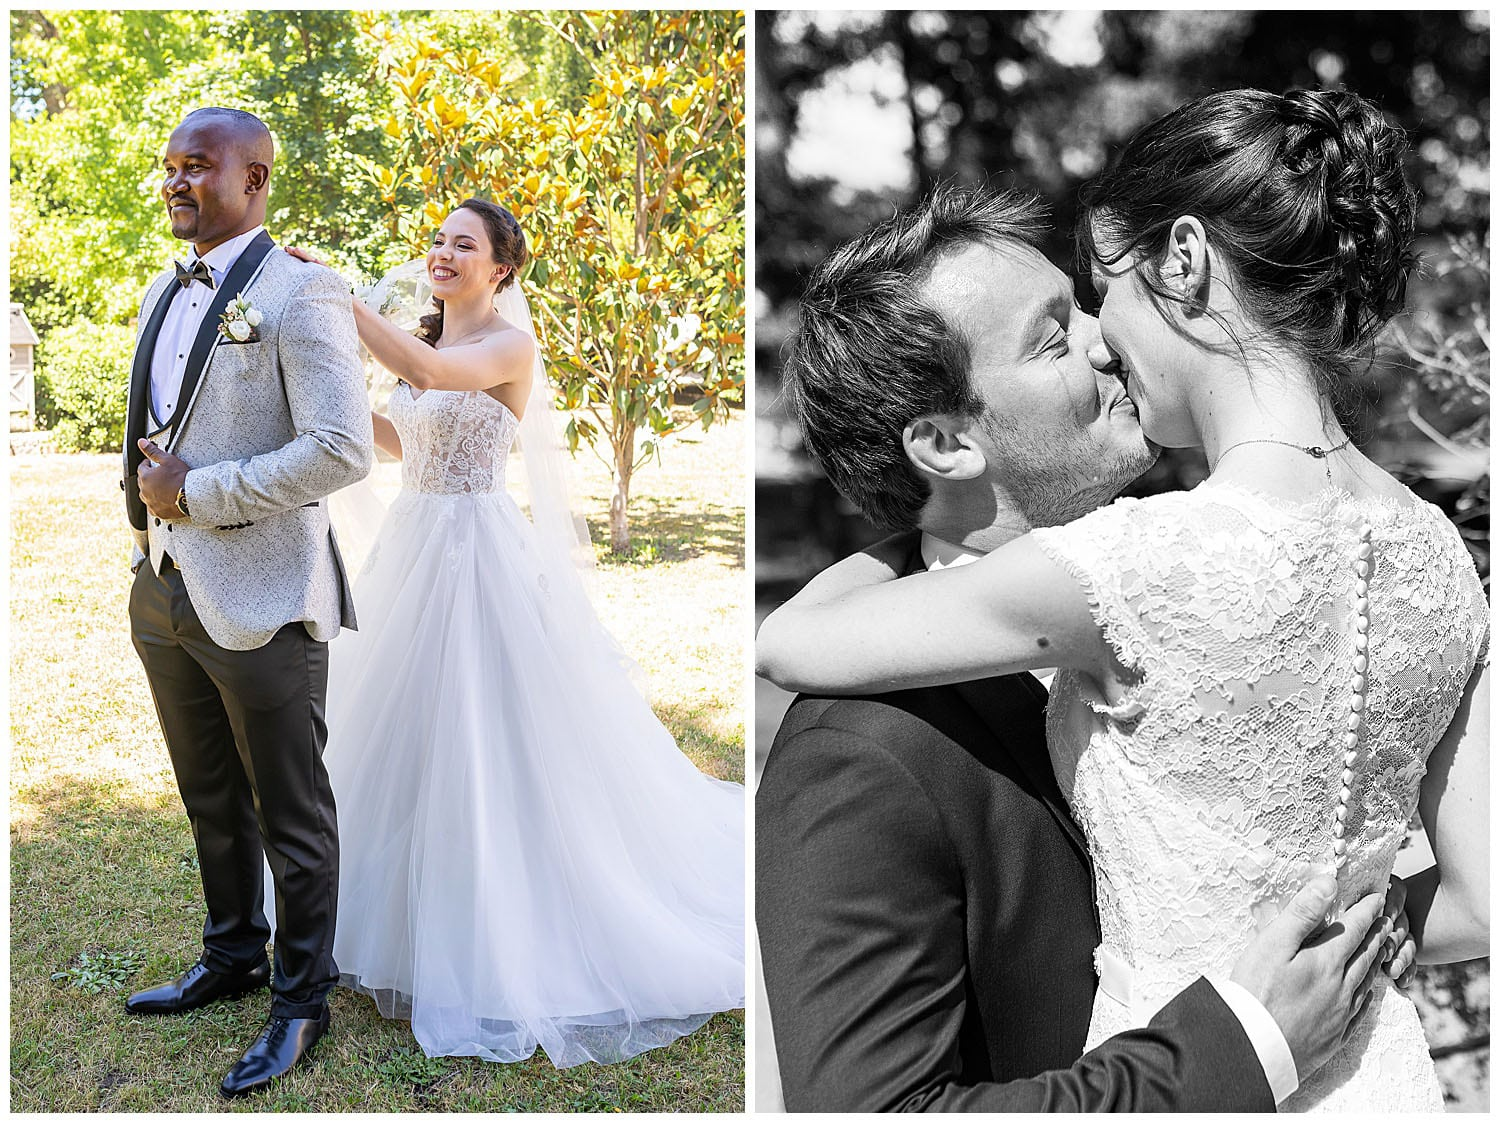 Marie-Calfopoulos-photographe-mariage-wedding-photographer-Provence-Avignon-Luberon-Vaucluse-first-look-chateau-provencal